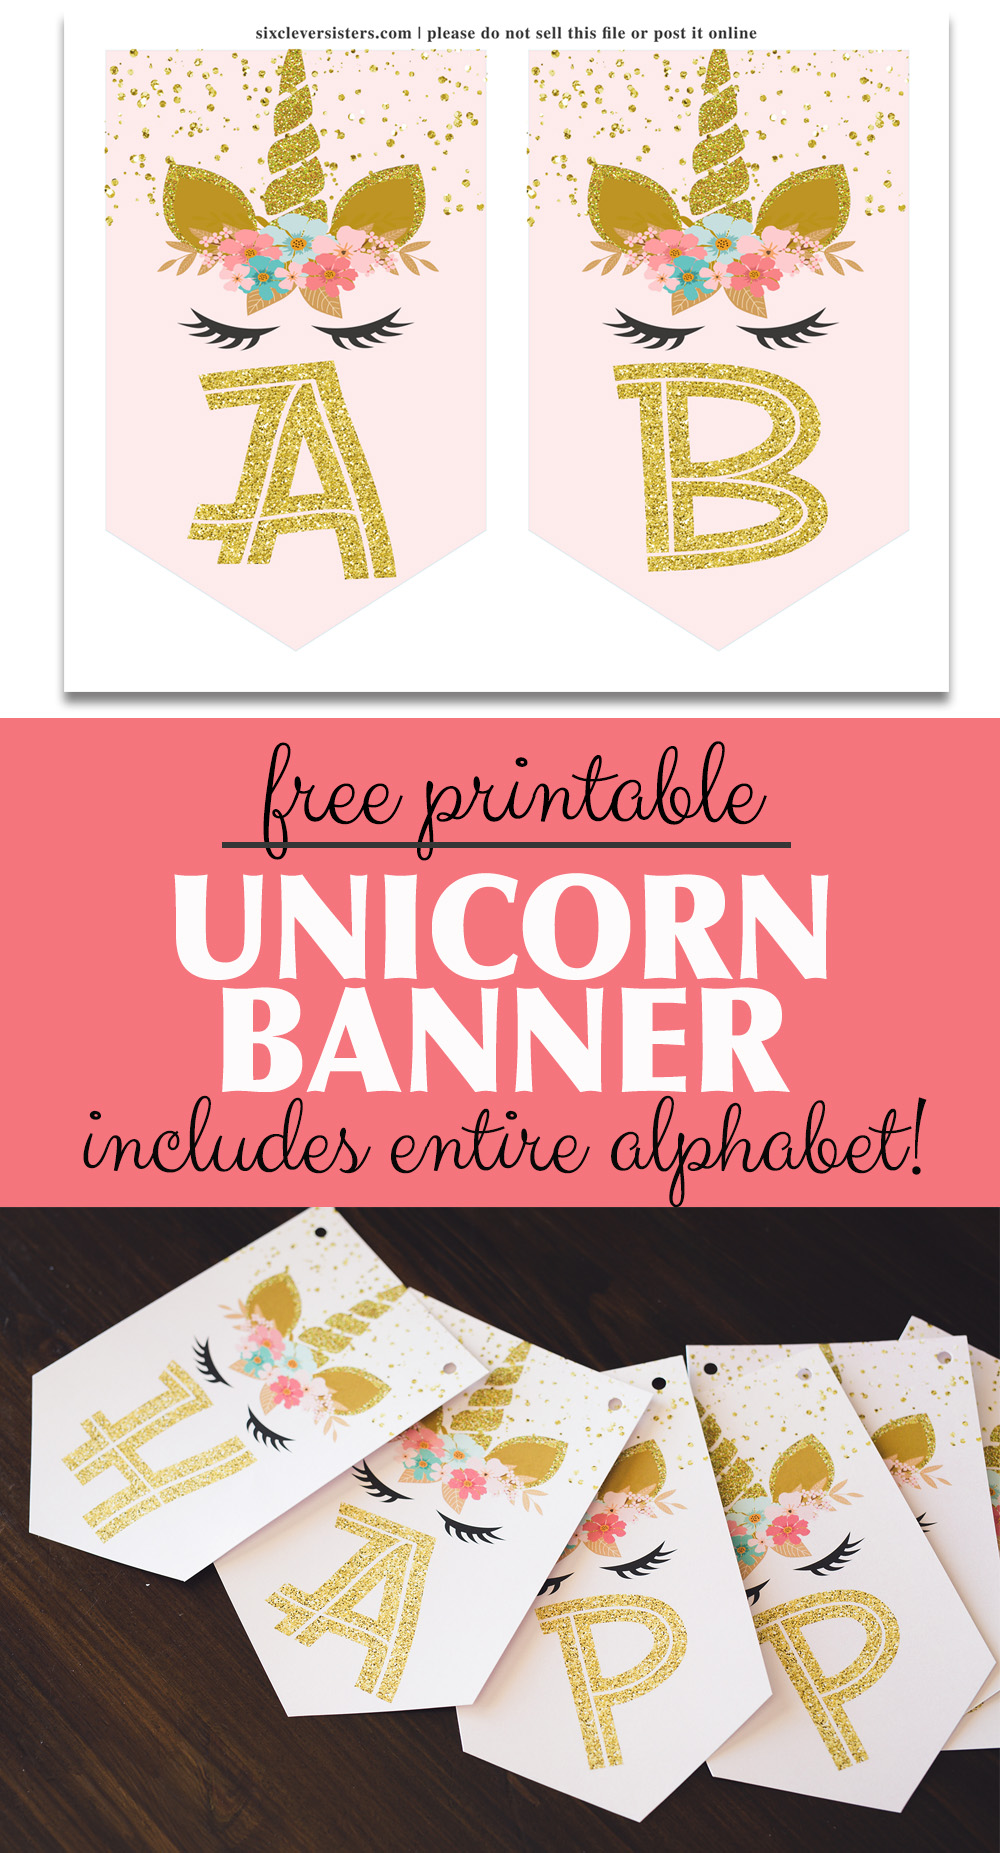 photo relating to Free Unicorn Printable titled Unicorn Banner Absolutely free Printable! (purple gold unicorn banner!)